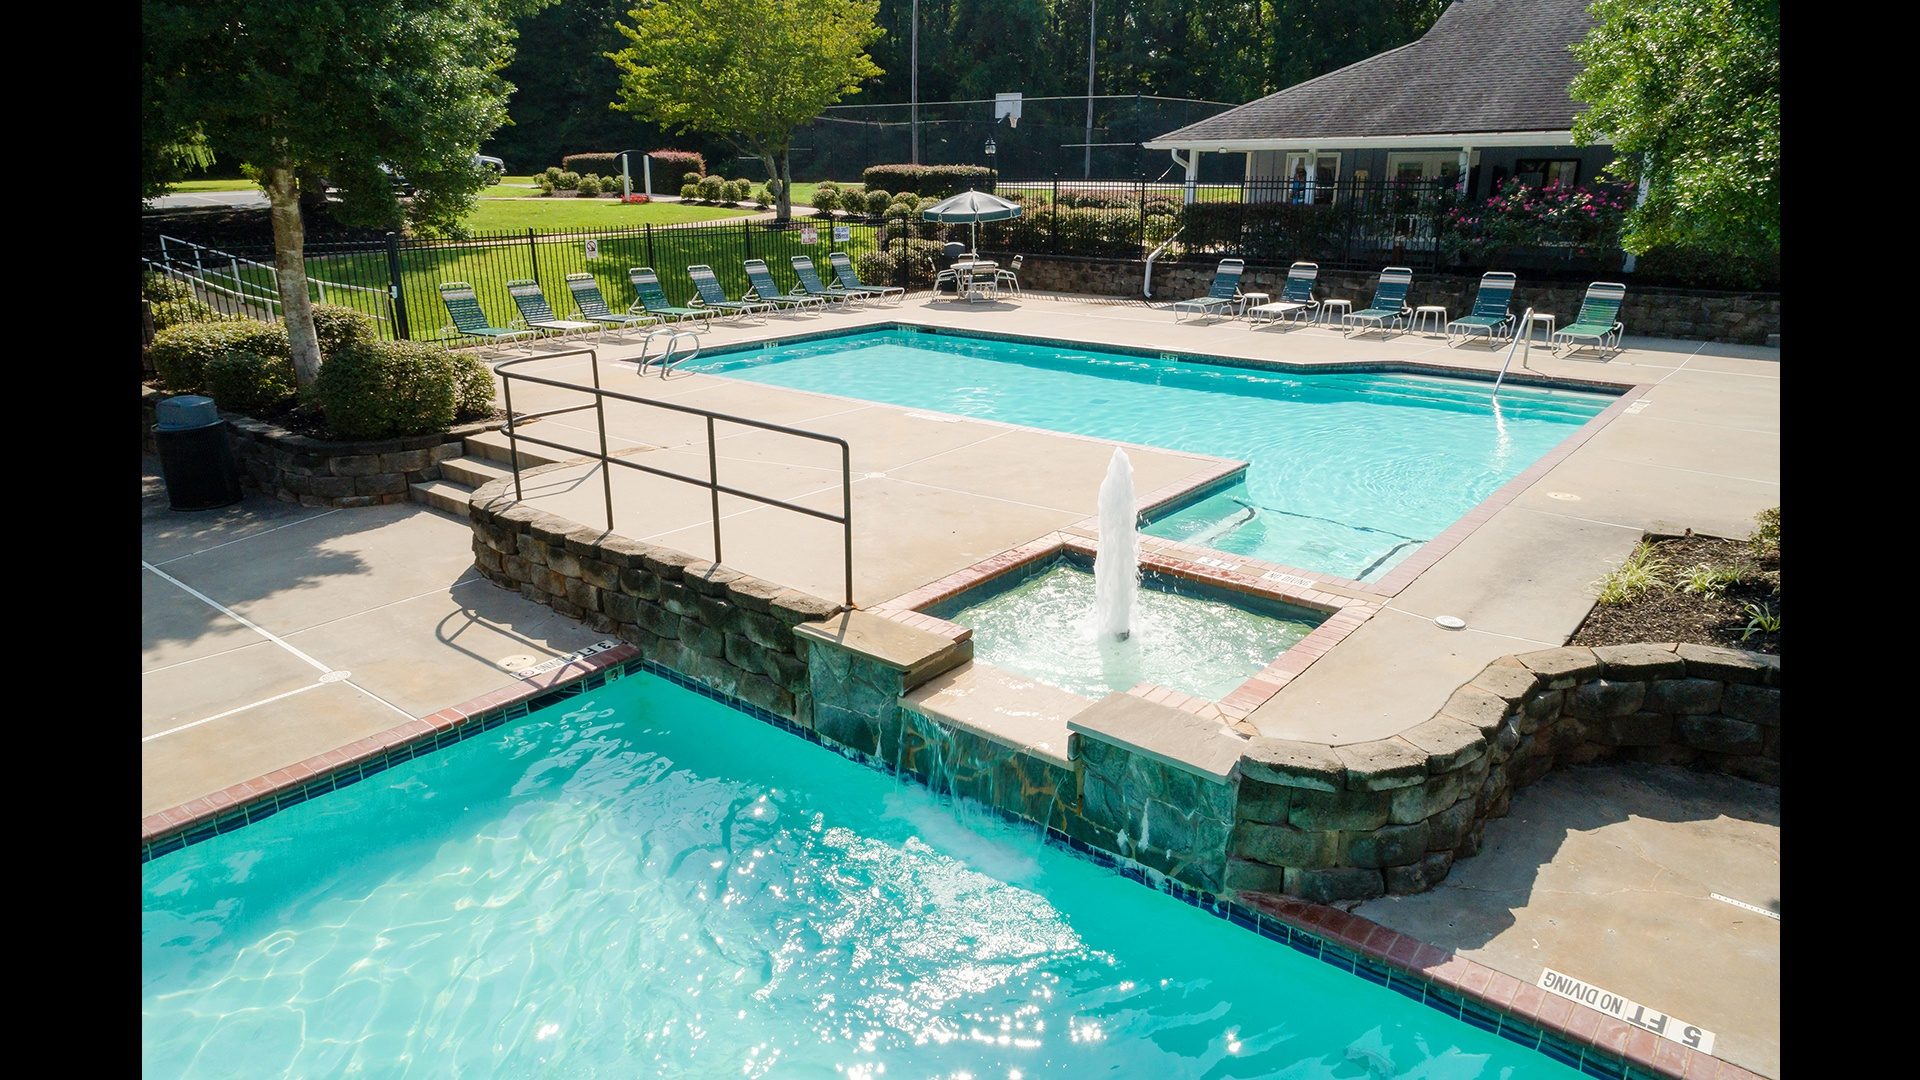 Countryside Village of Lake Lanier Manufactured Homes Community Swimming Pool and Hot Tub in Buford, GA